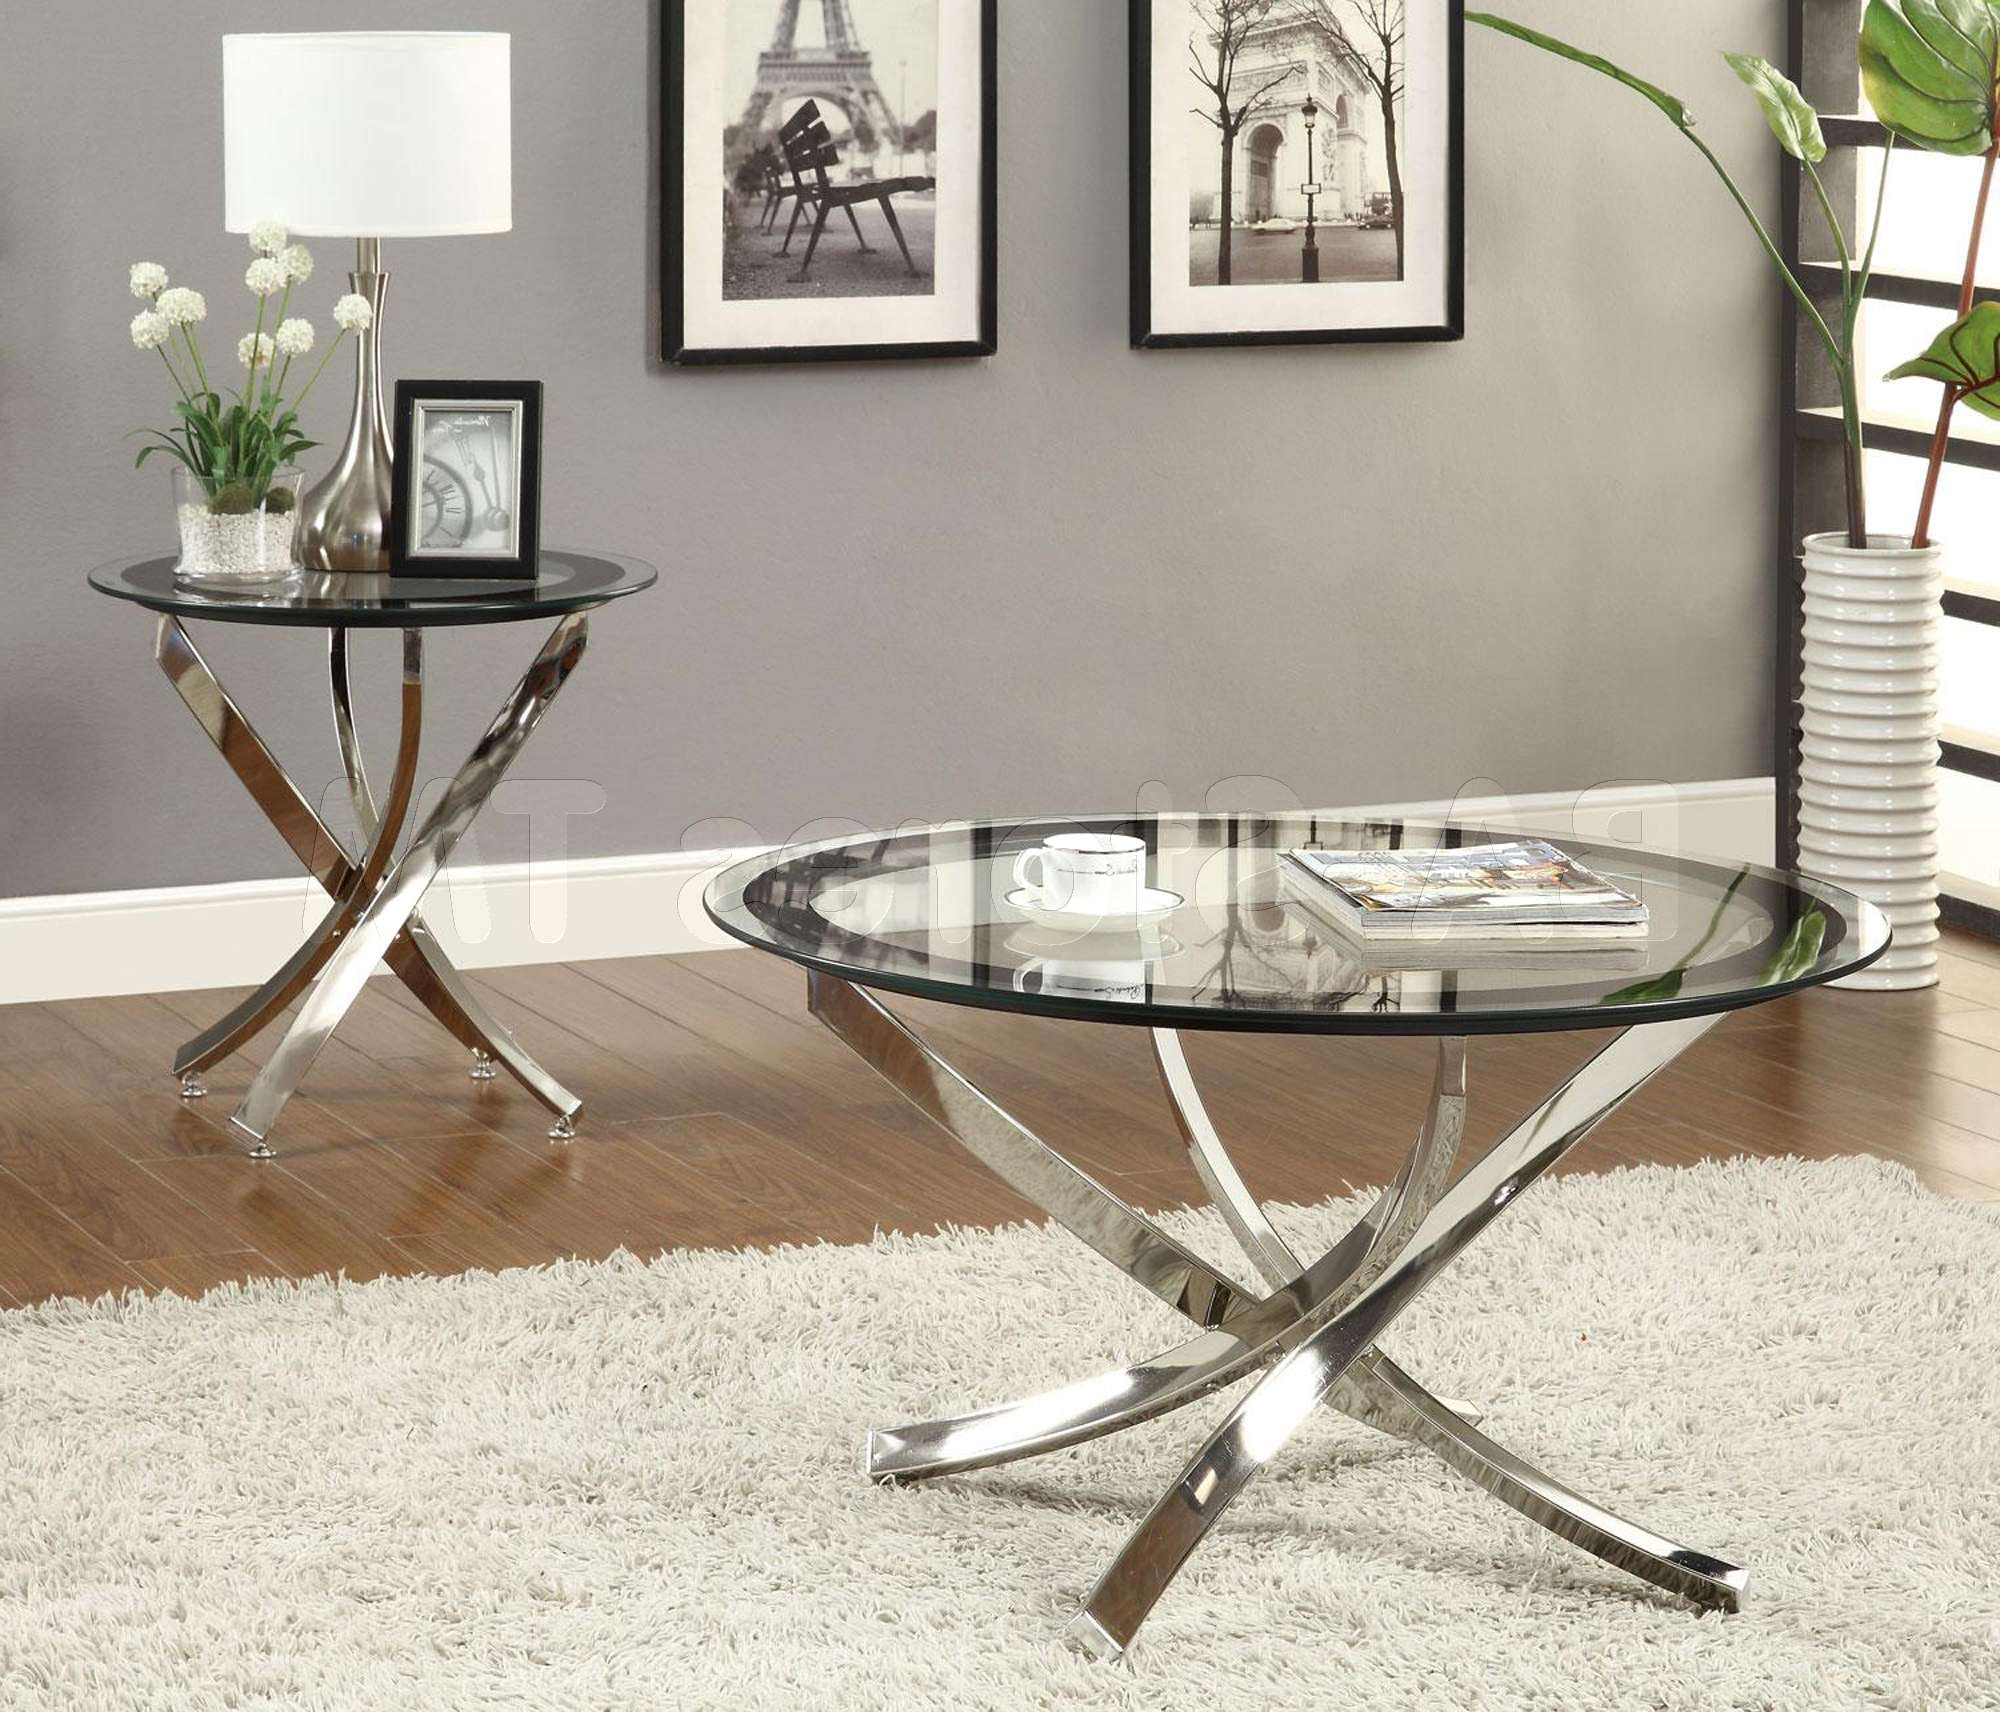 Modern Minimalist Living Room Design With Small Oval Glass Top Within Most Up To Date Glass Steel Coffee Tables (View 6 of 20)